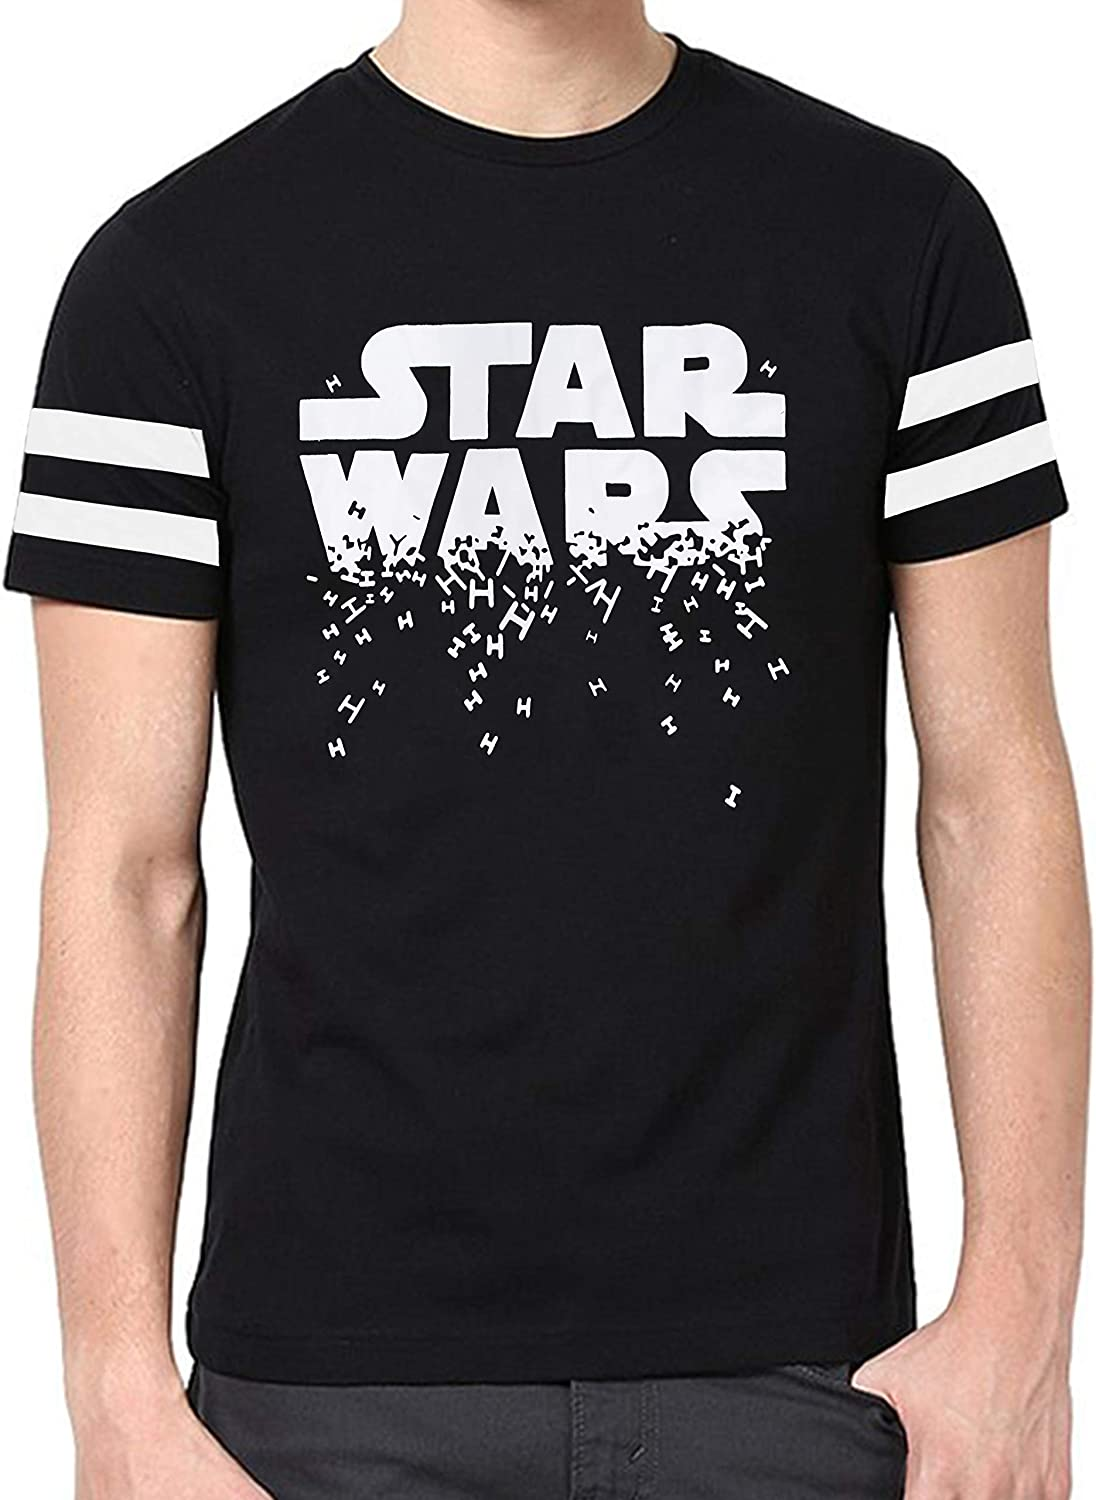 Star-Wars Graphic T Shirts for Men - Adult Novelty Gifts Womens Casual Shirts